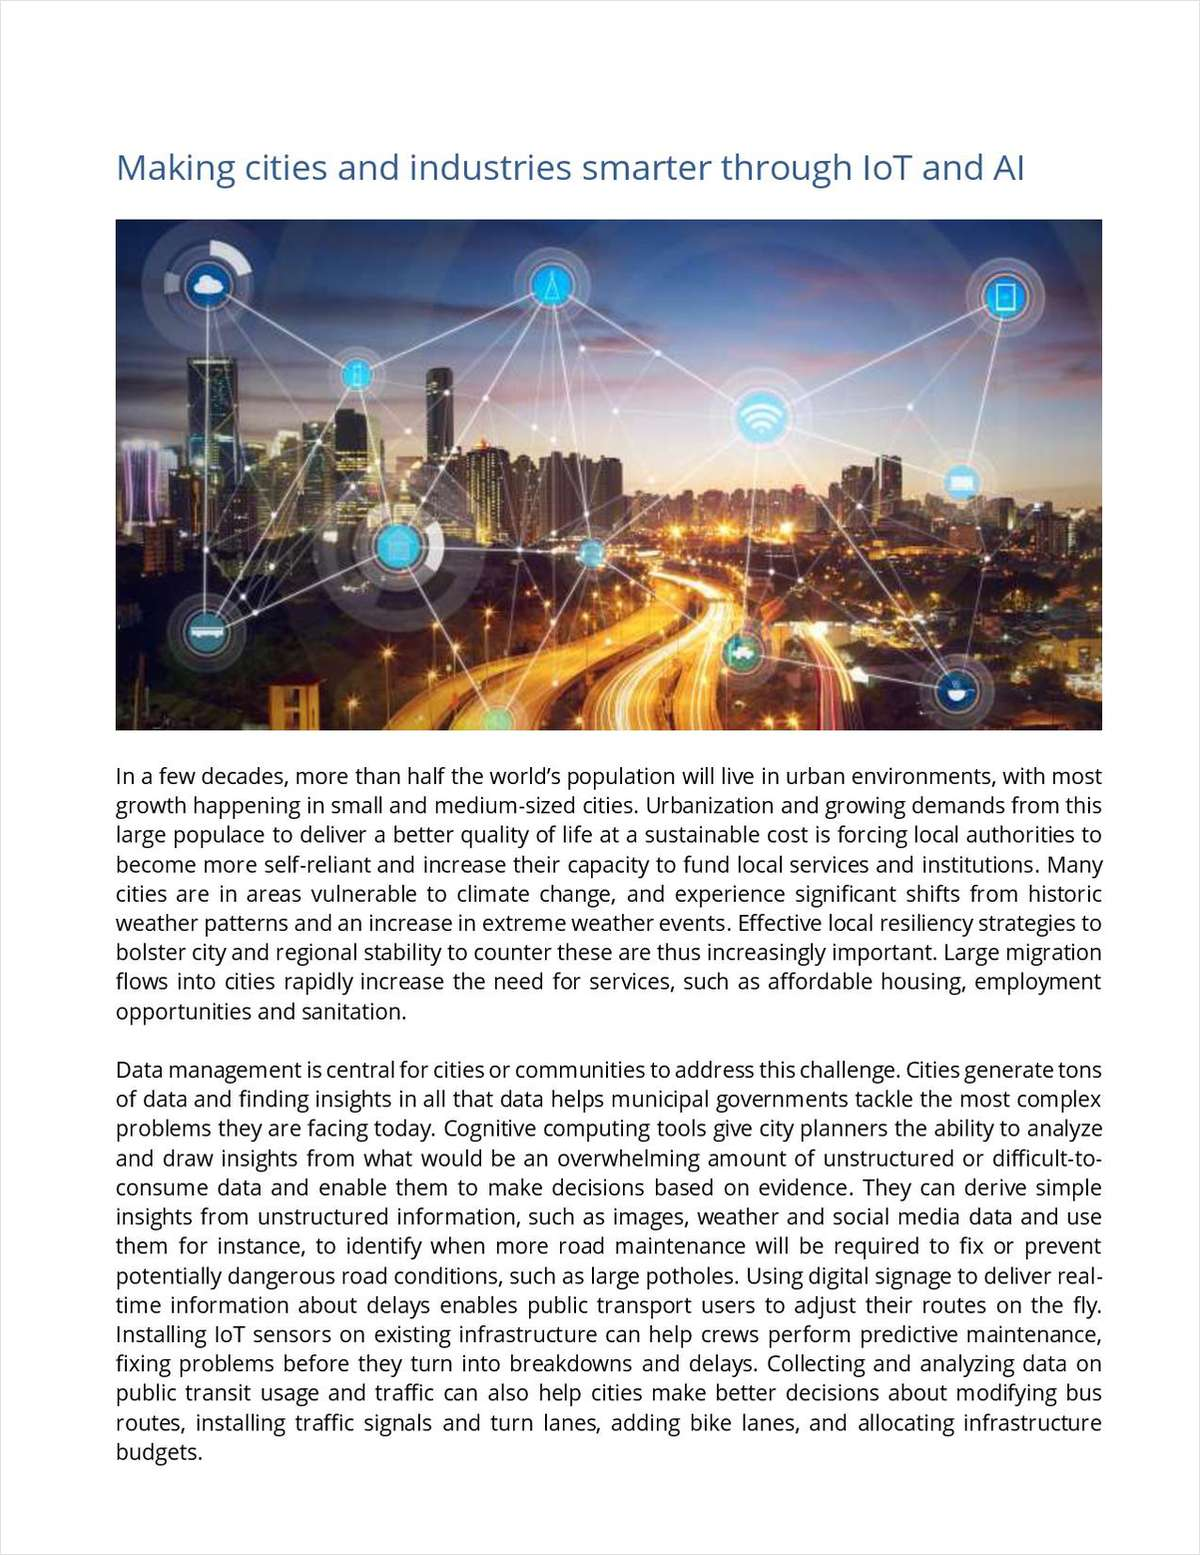 Making Cities and Industries Smarter Through IoT and AI